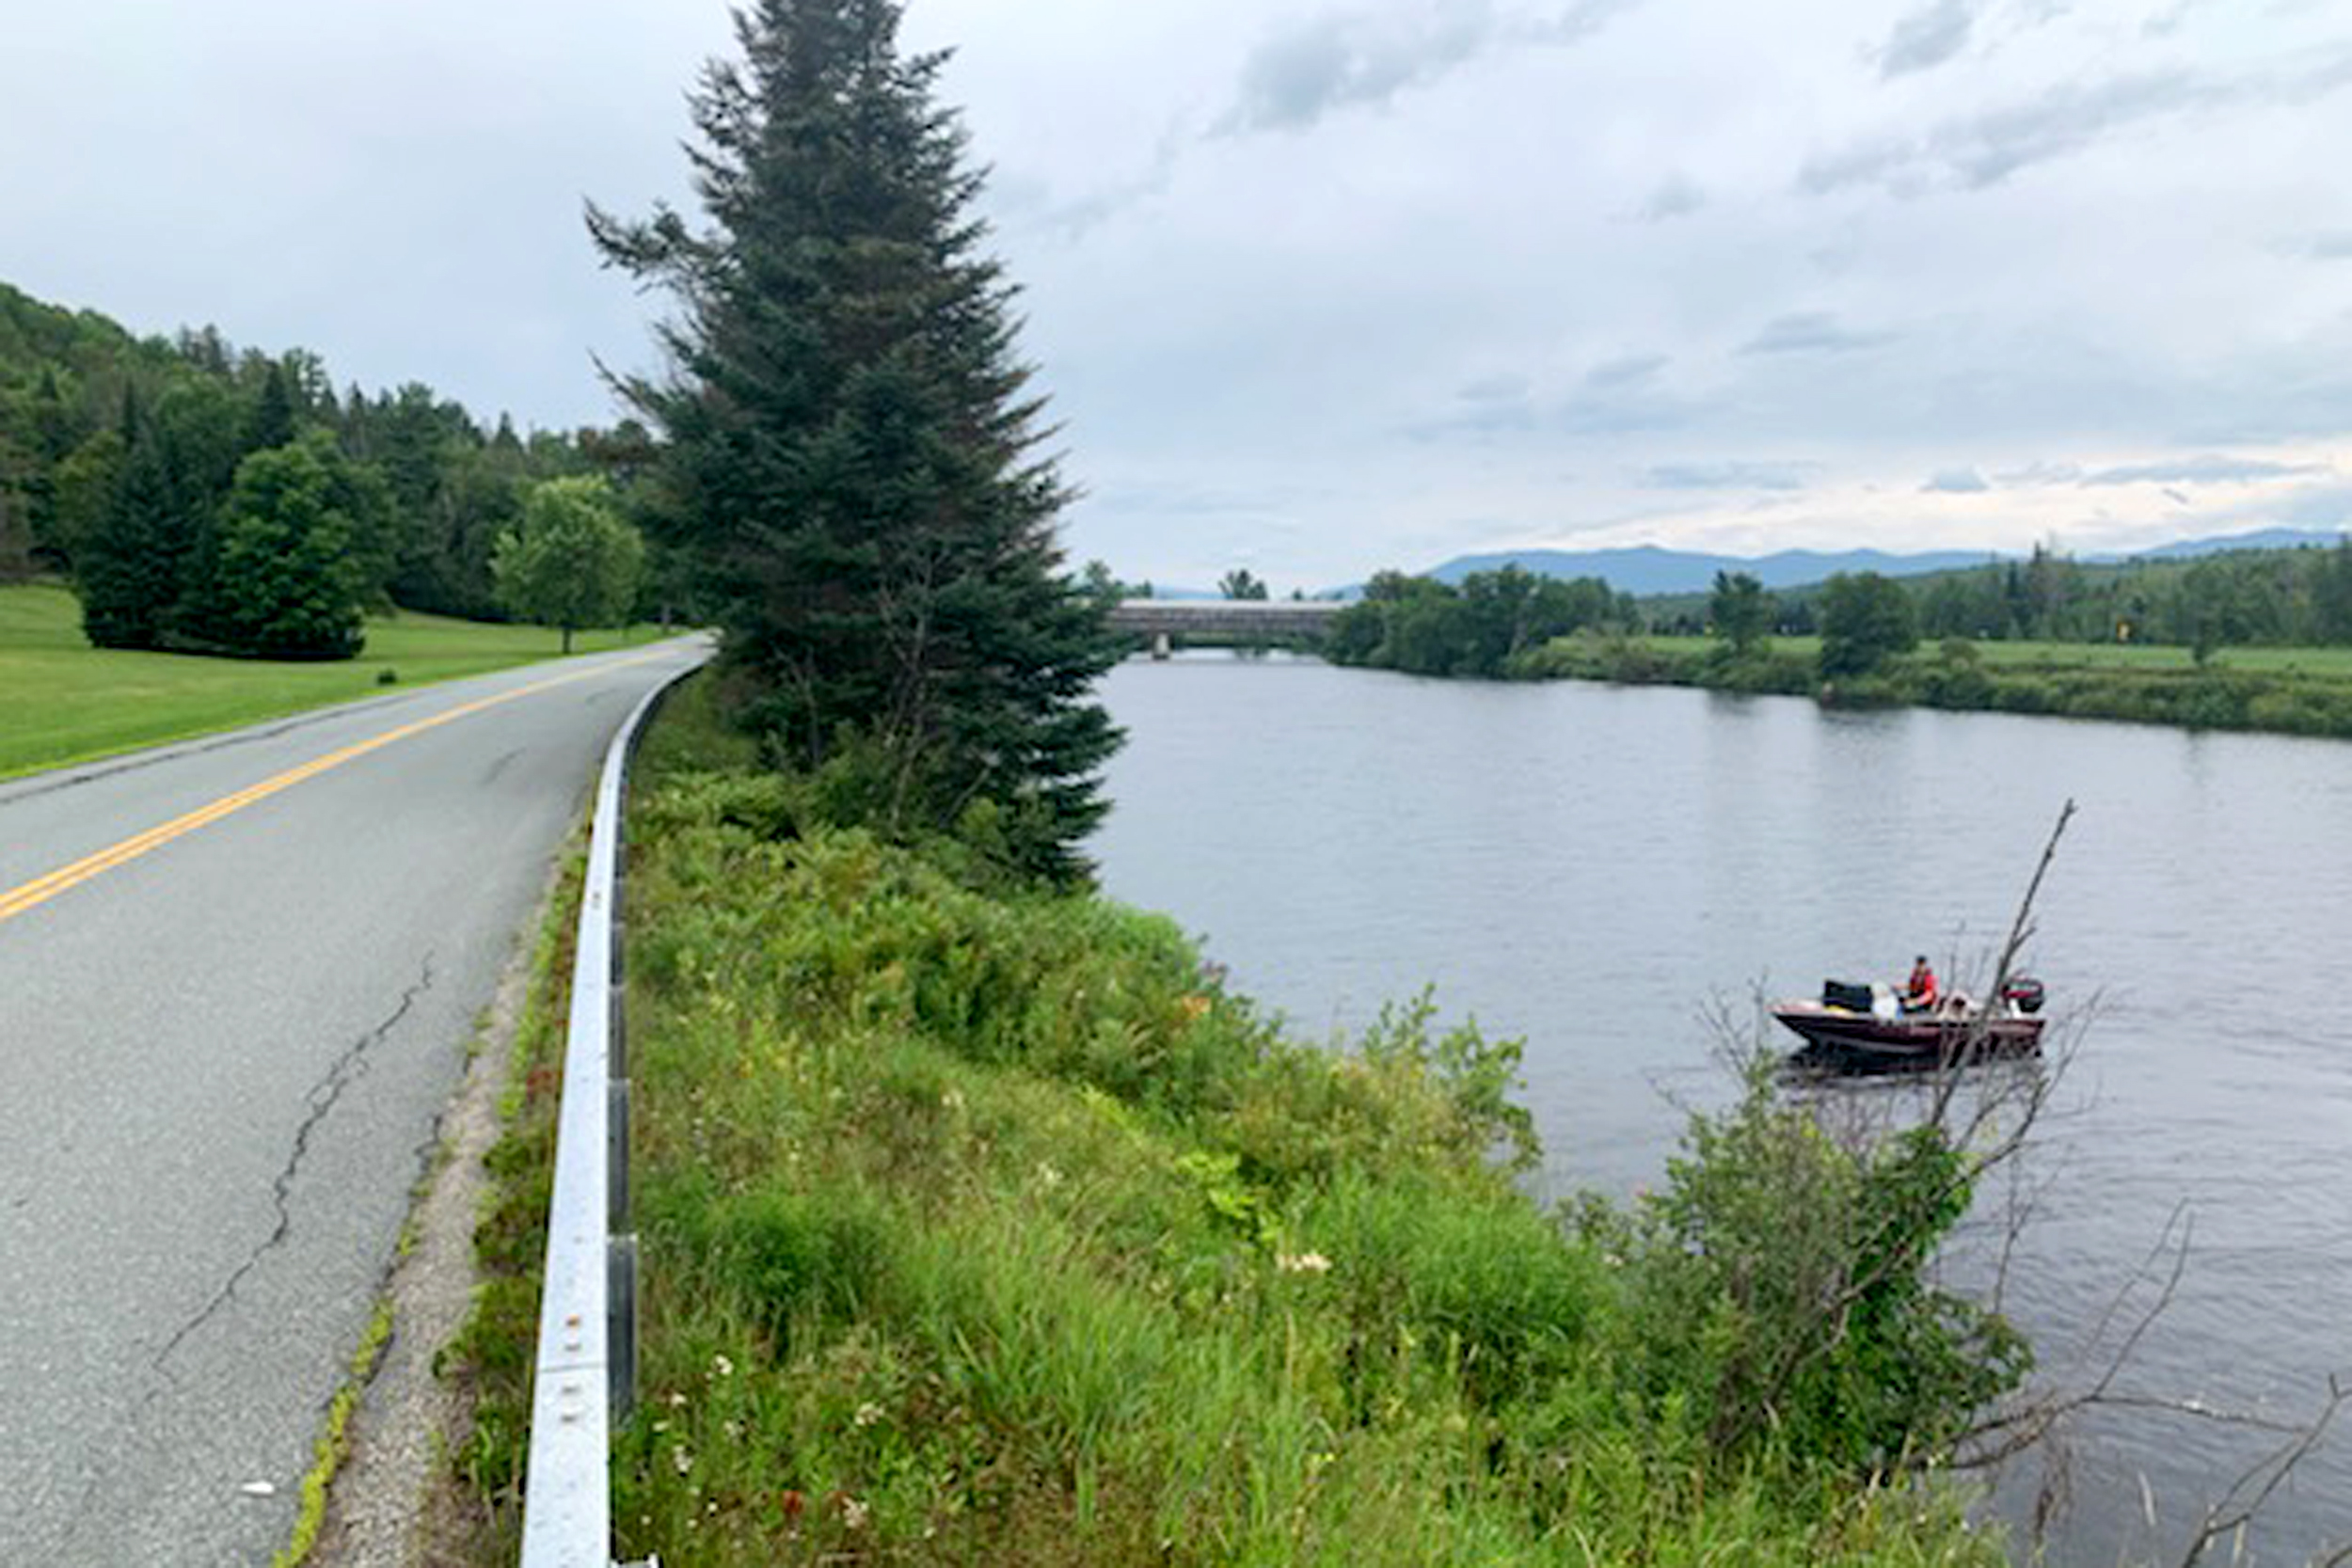 Human remains, car found in river in search of N.H. woman missing for 43 years